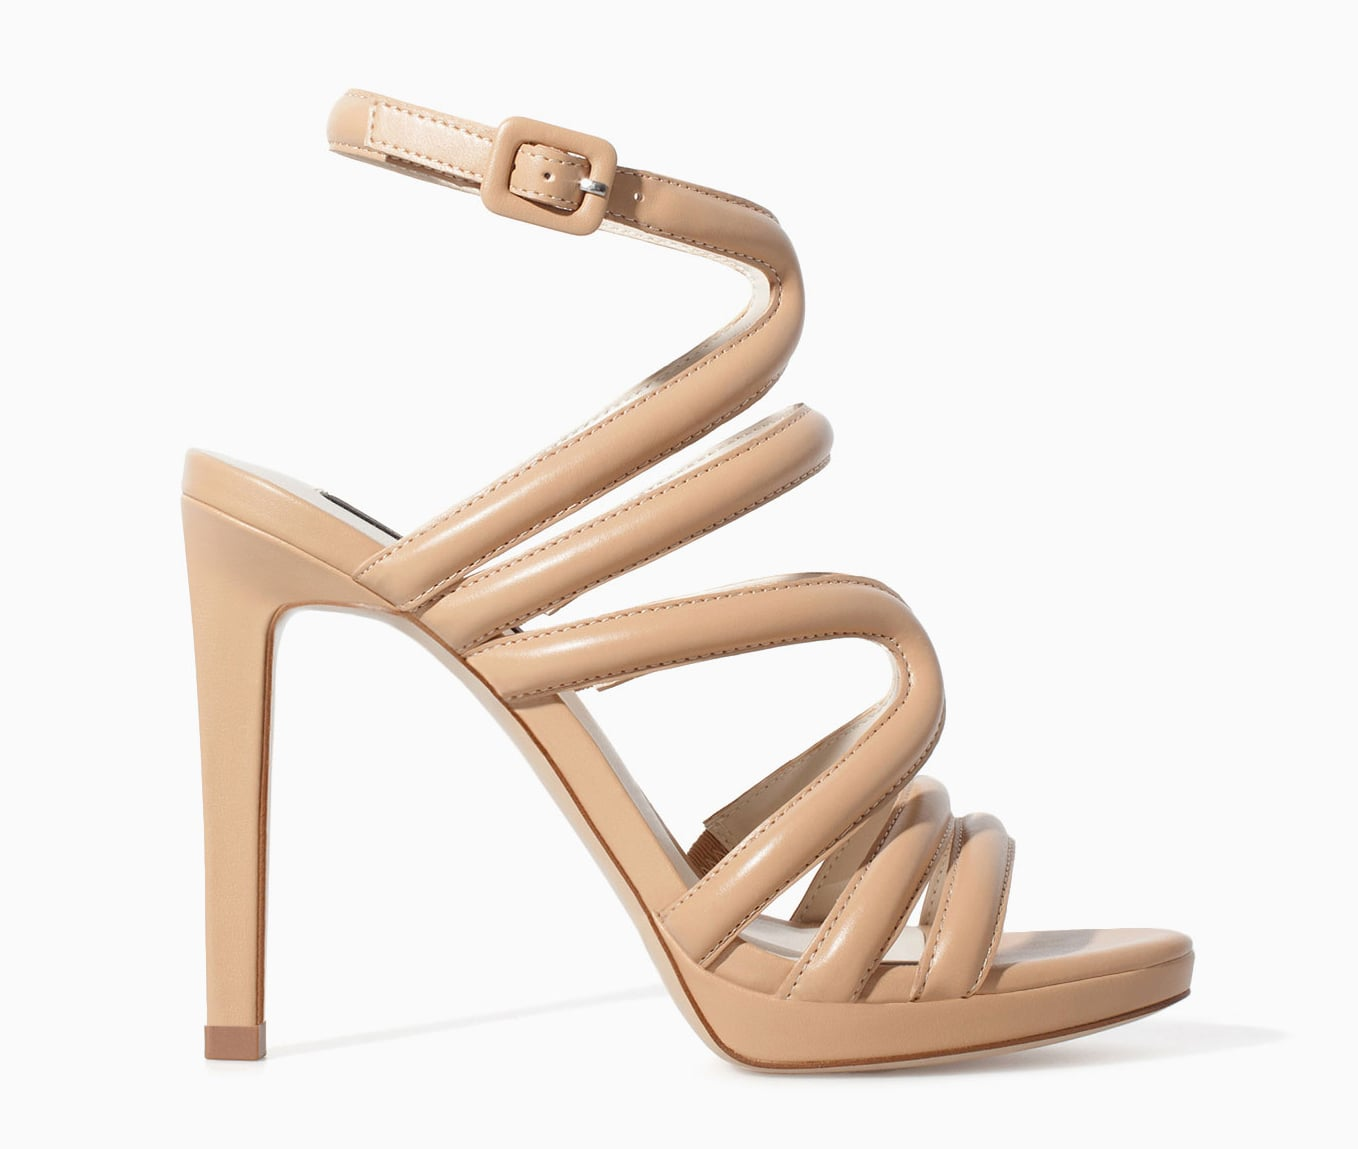 Strappy Nude High Heels